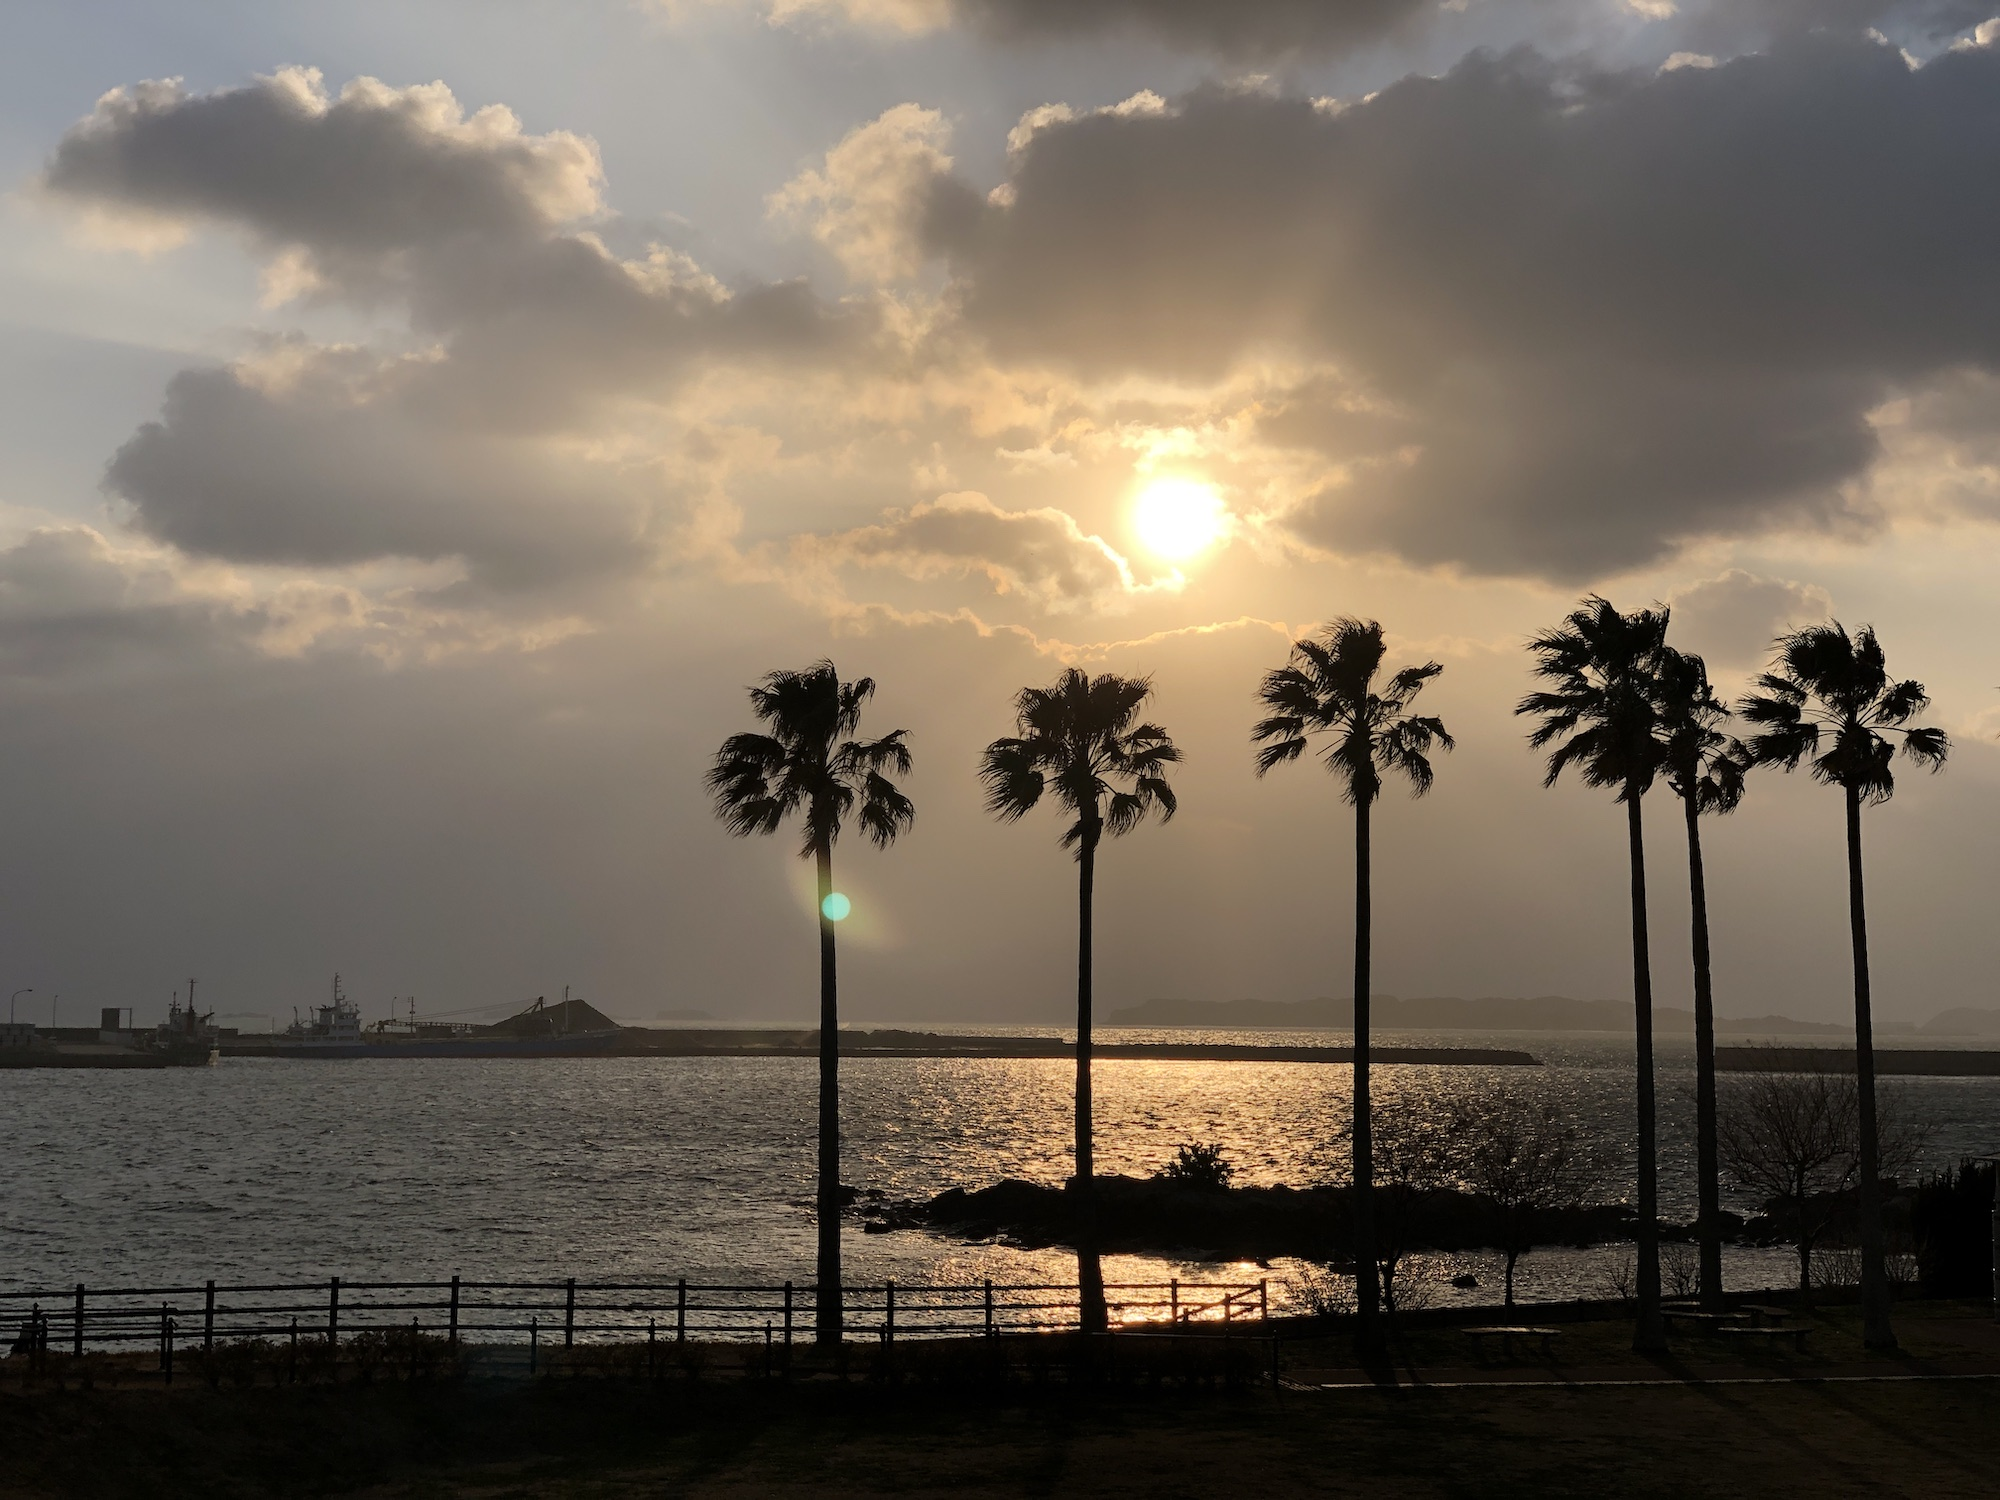 Sunset with palm tree silhouettes